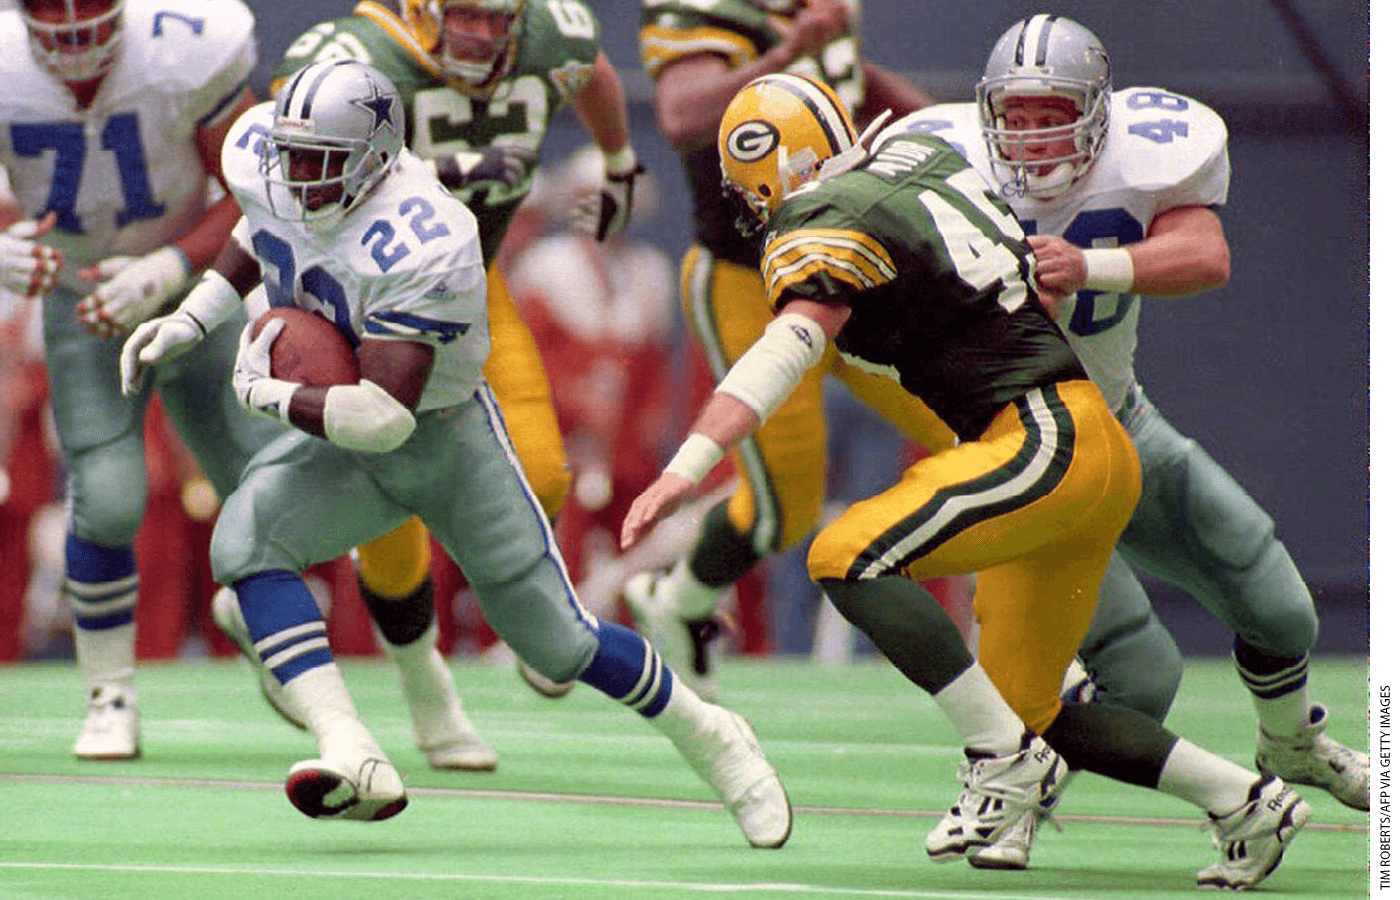 Dallas Cowboys running back Emmitt Smith (22) cuts around teammate Daryl Johnston (48) as Johnston makes a block on Green Bay Packers safety Mike Prior (45) during second quarter action 03 October 1993.